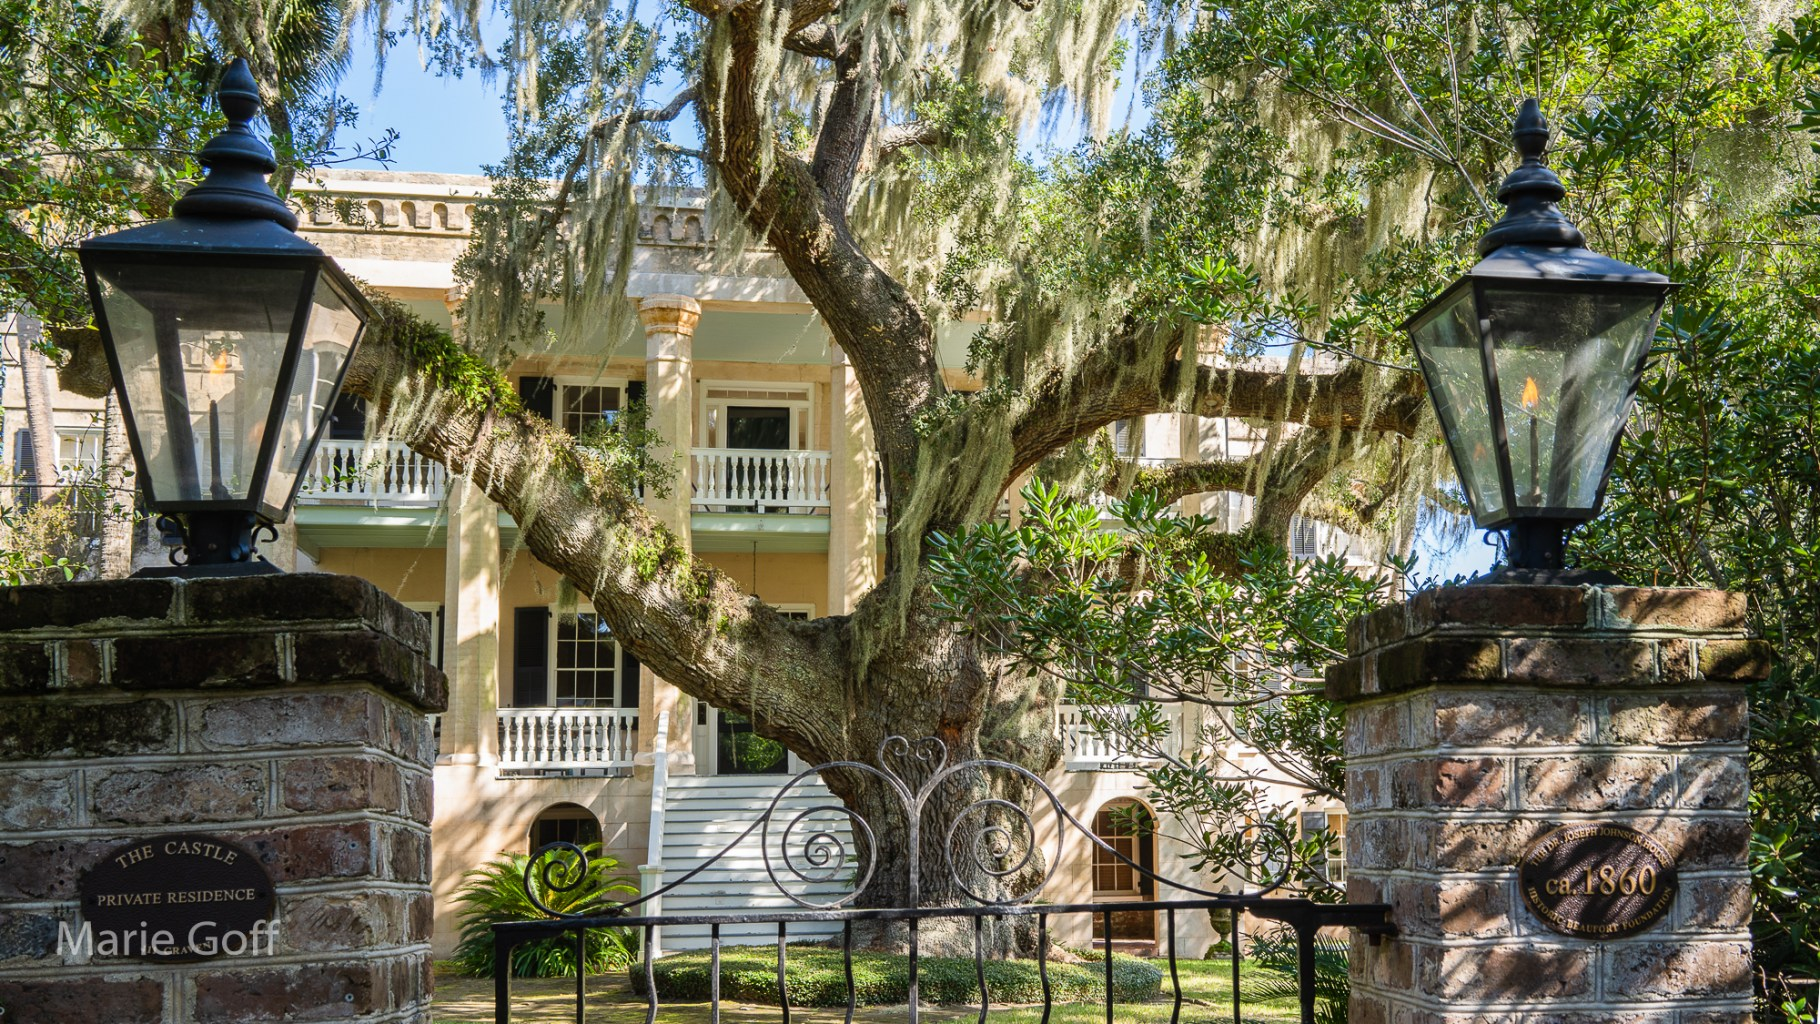 Lowcountry Photography Tour